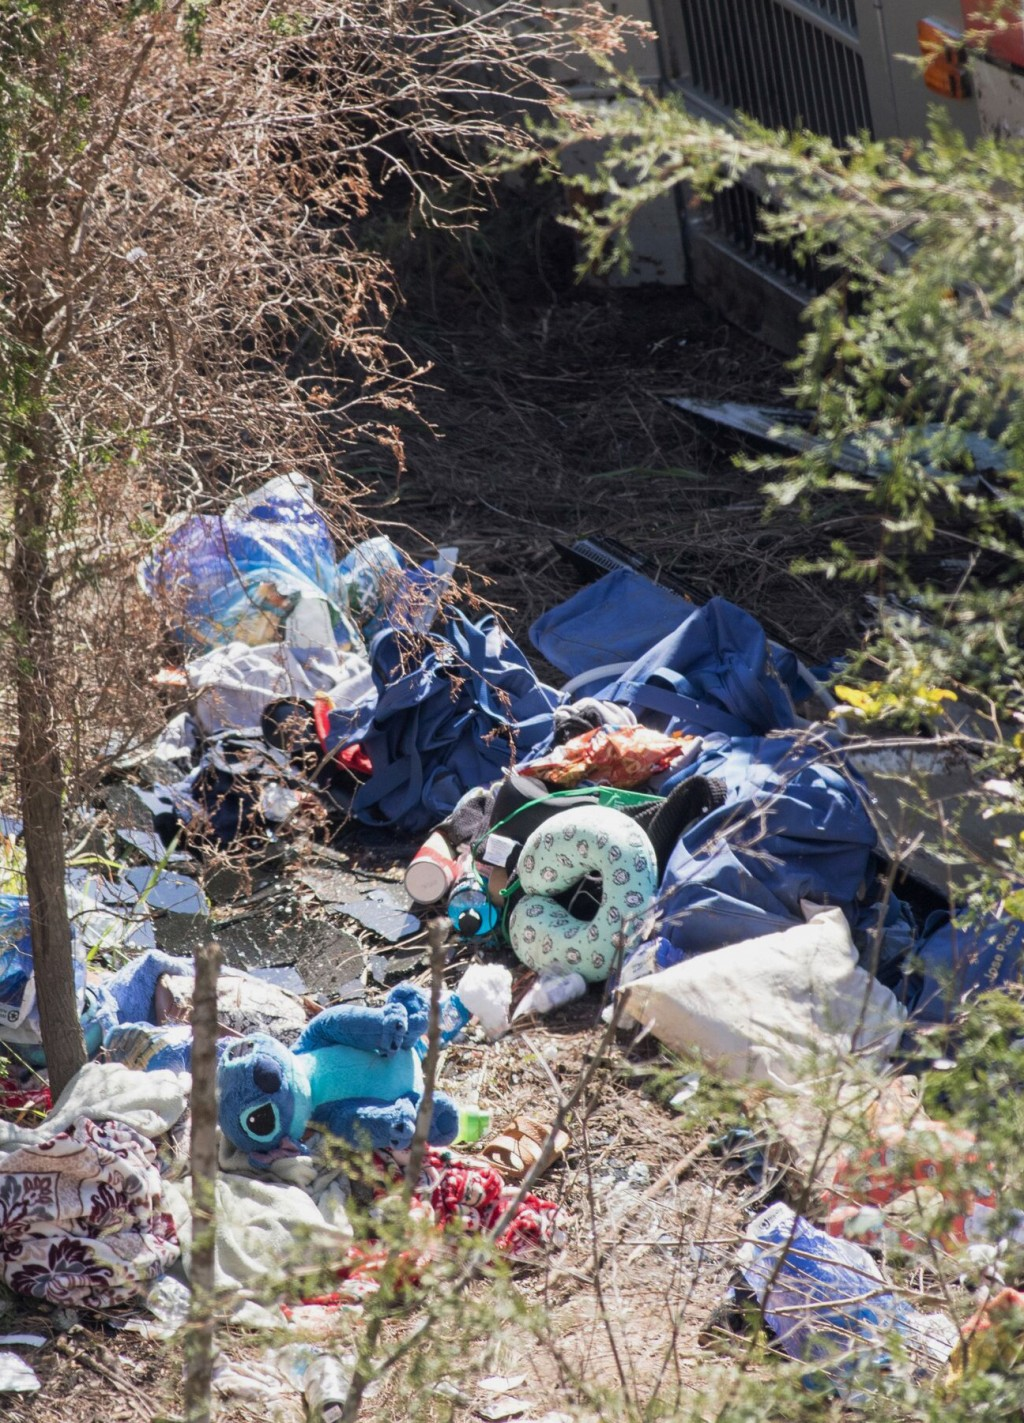 Personal items are scattered near the site where a tour bus crashed into a ravine in Loxley, Ala., Tuesday, March 13, 2018. The bus carrying dozens of